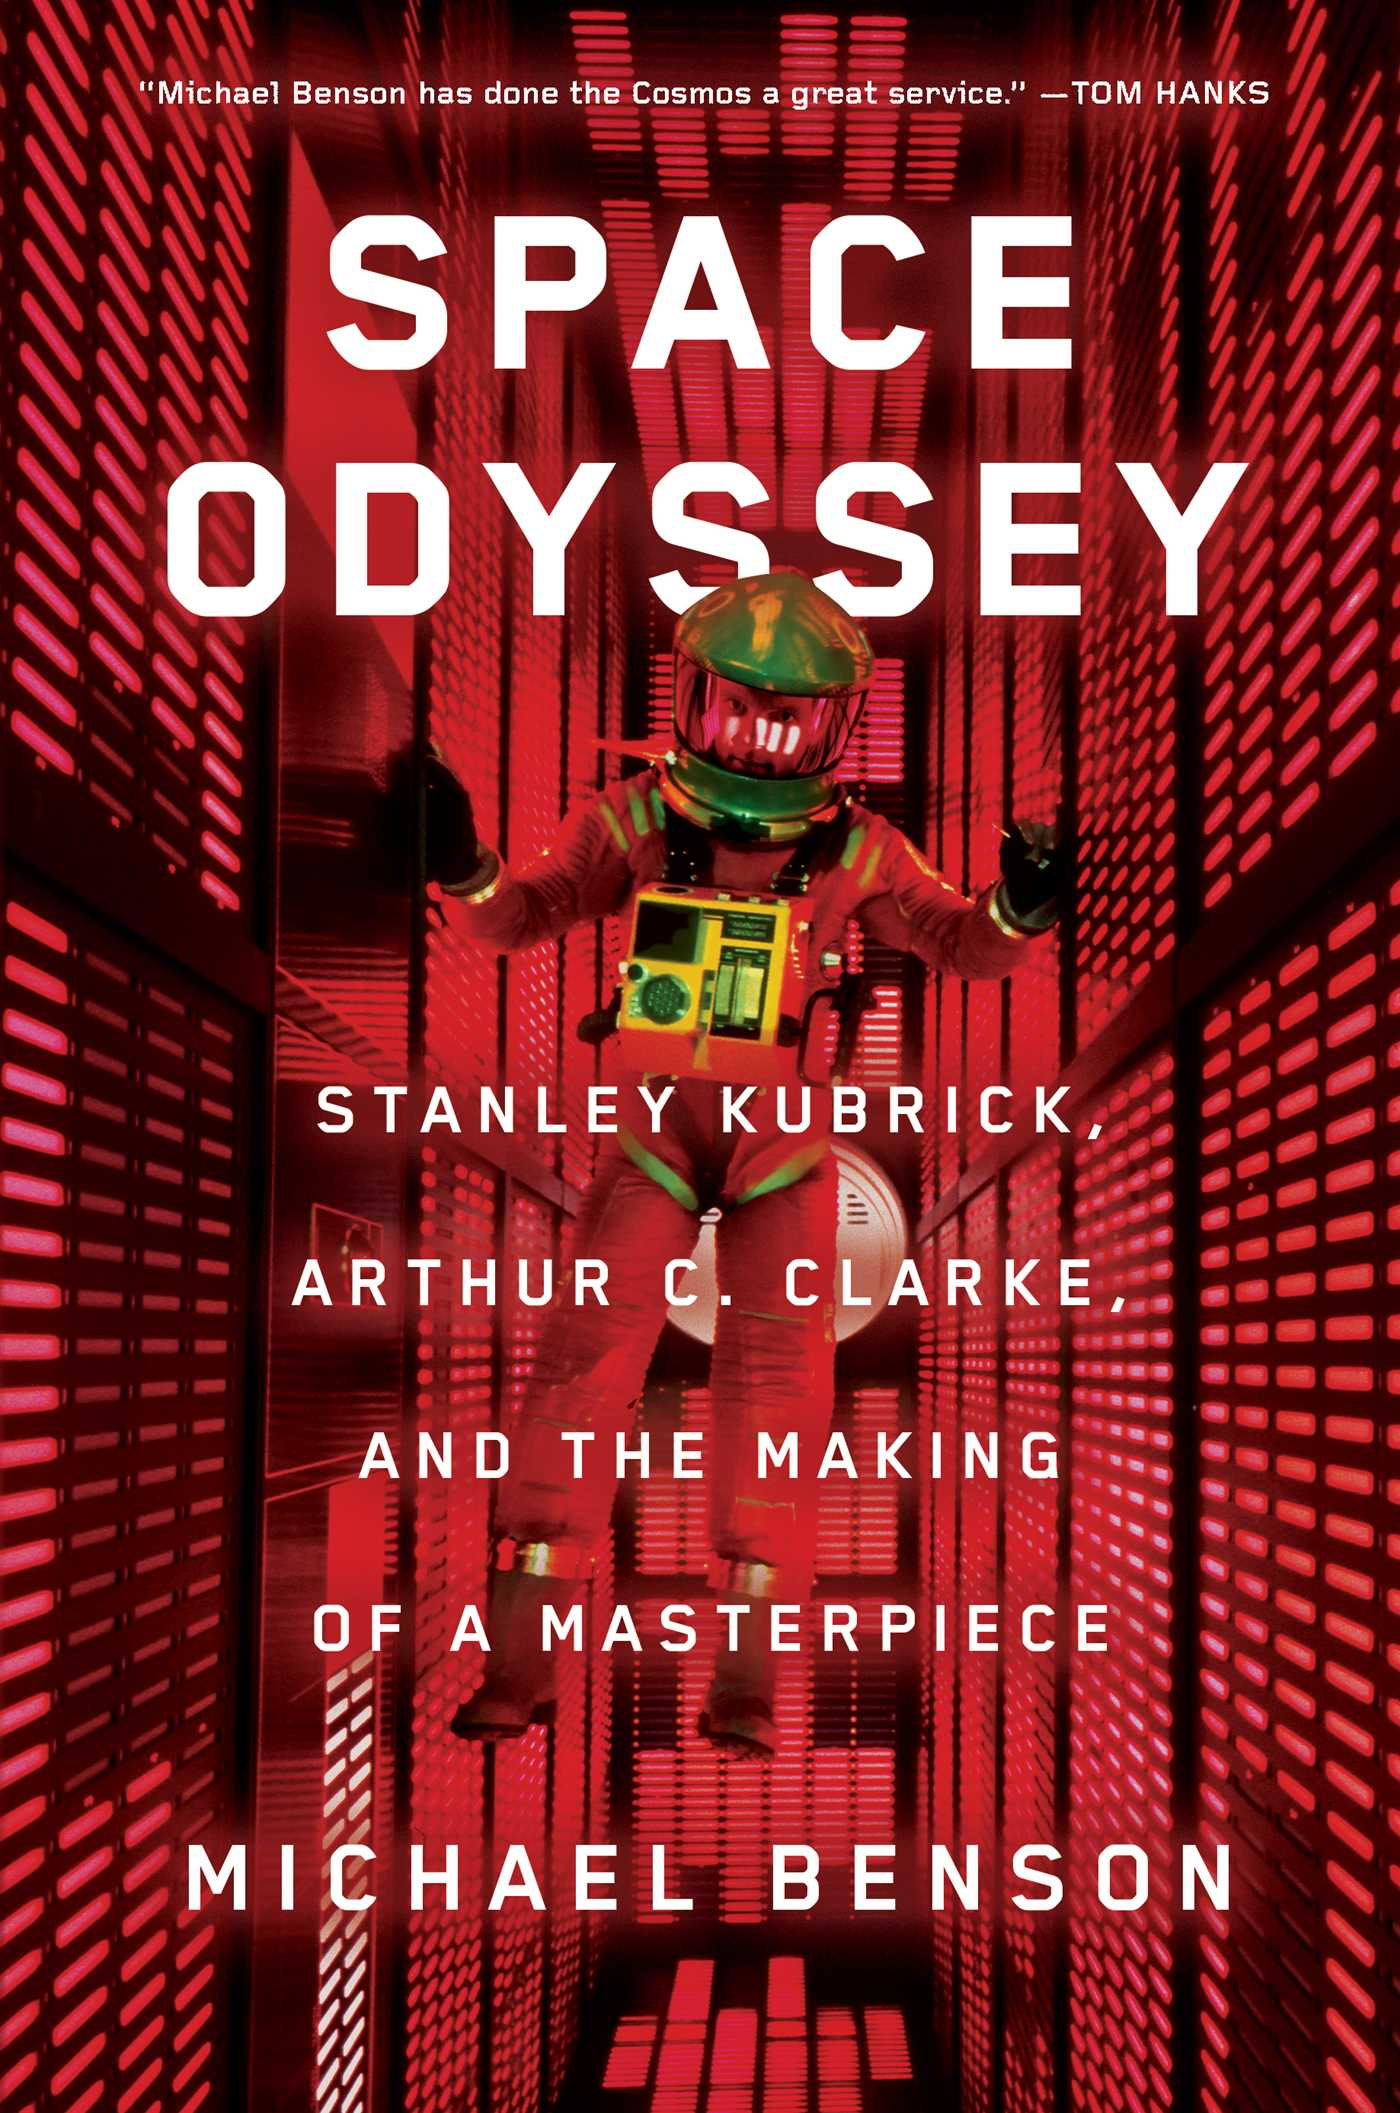 Promotional image for Martin Bandyke Under Covers for June 2018: Martin Bandyke interviews Michael Benson, author of Space Odyssey: Stanley Kubrick, Arthur C. Clarke, and the Making of a Masterpiece. podcast